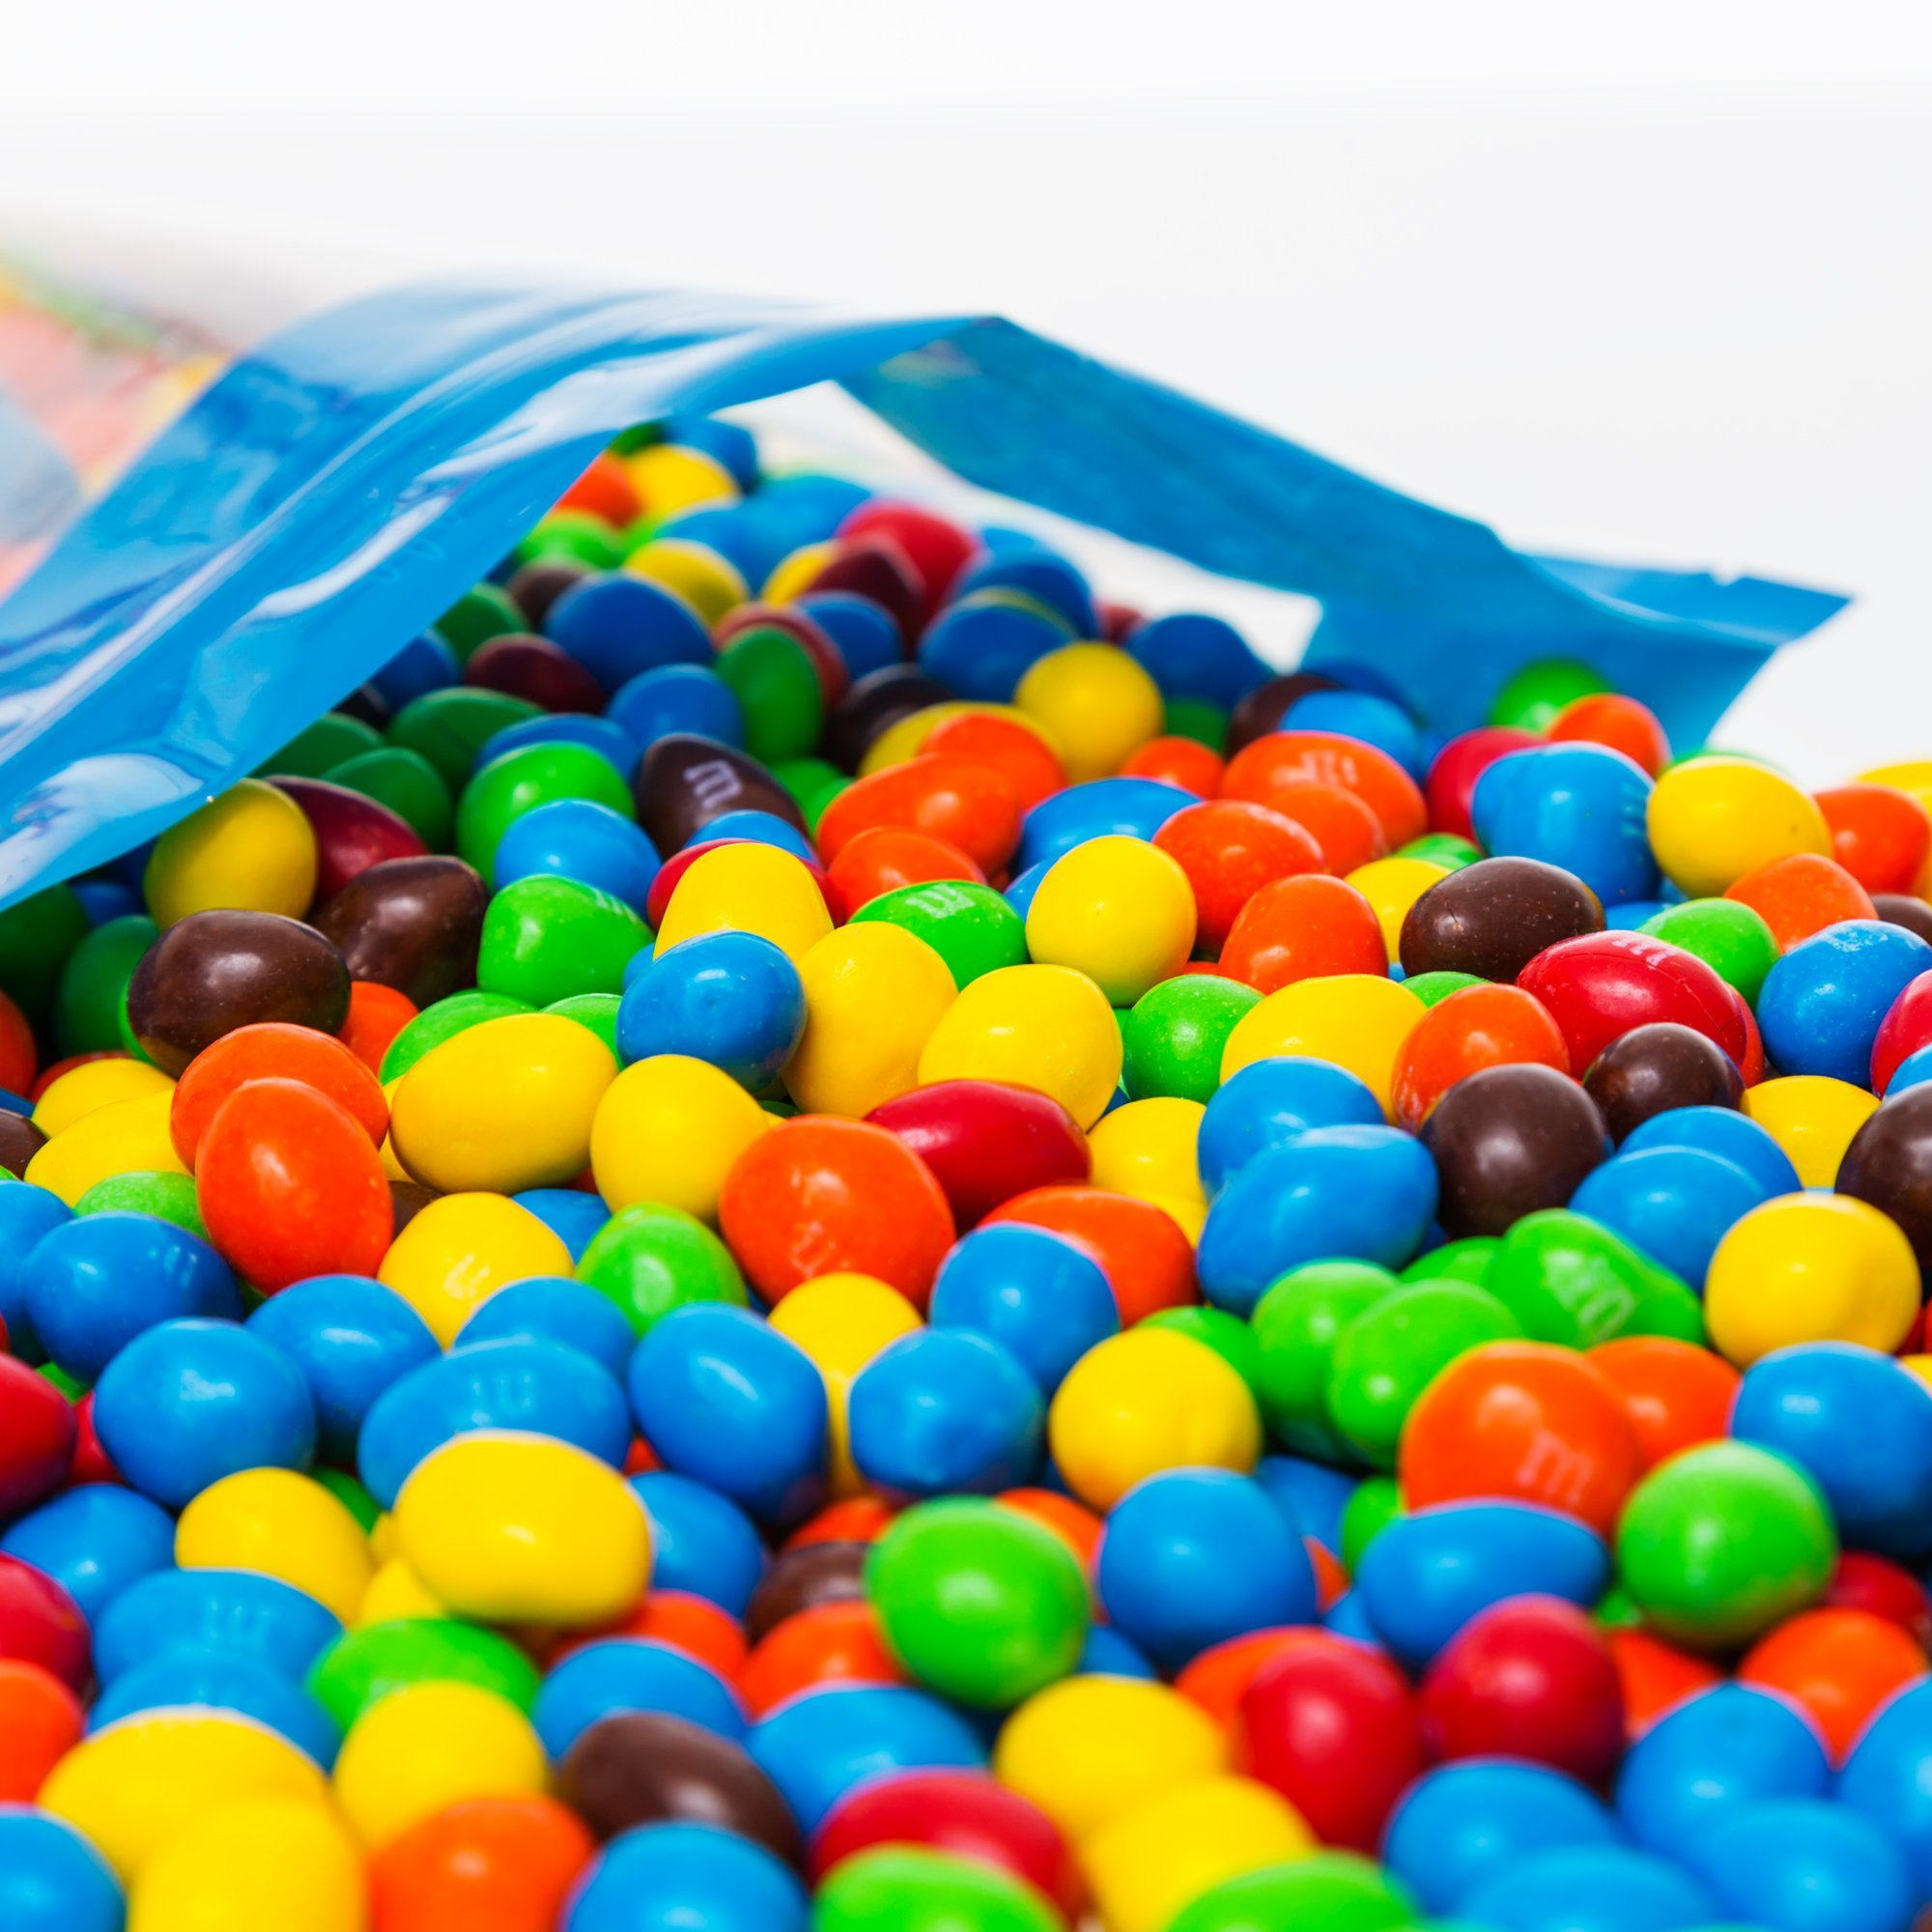 Bulk Peanut M&Ms in Resealable Bomber Bag, Wholesale Chocolate & Peanut Candy (5lb Bag) by Fast Fresh Nuts (Image #3)